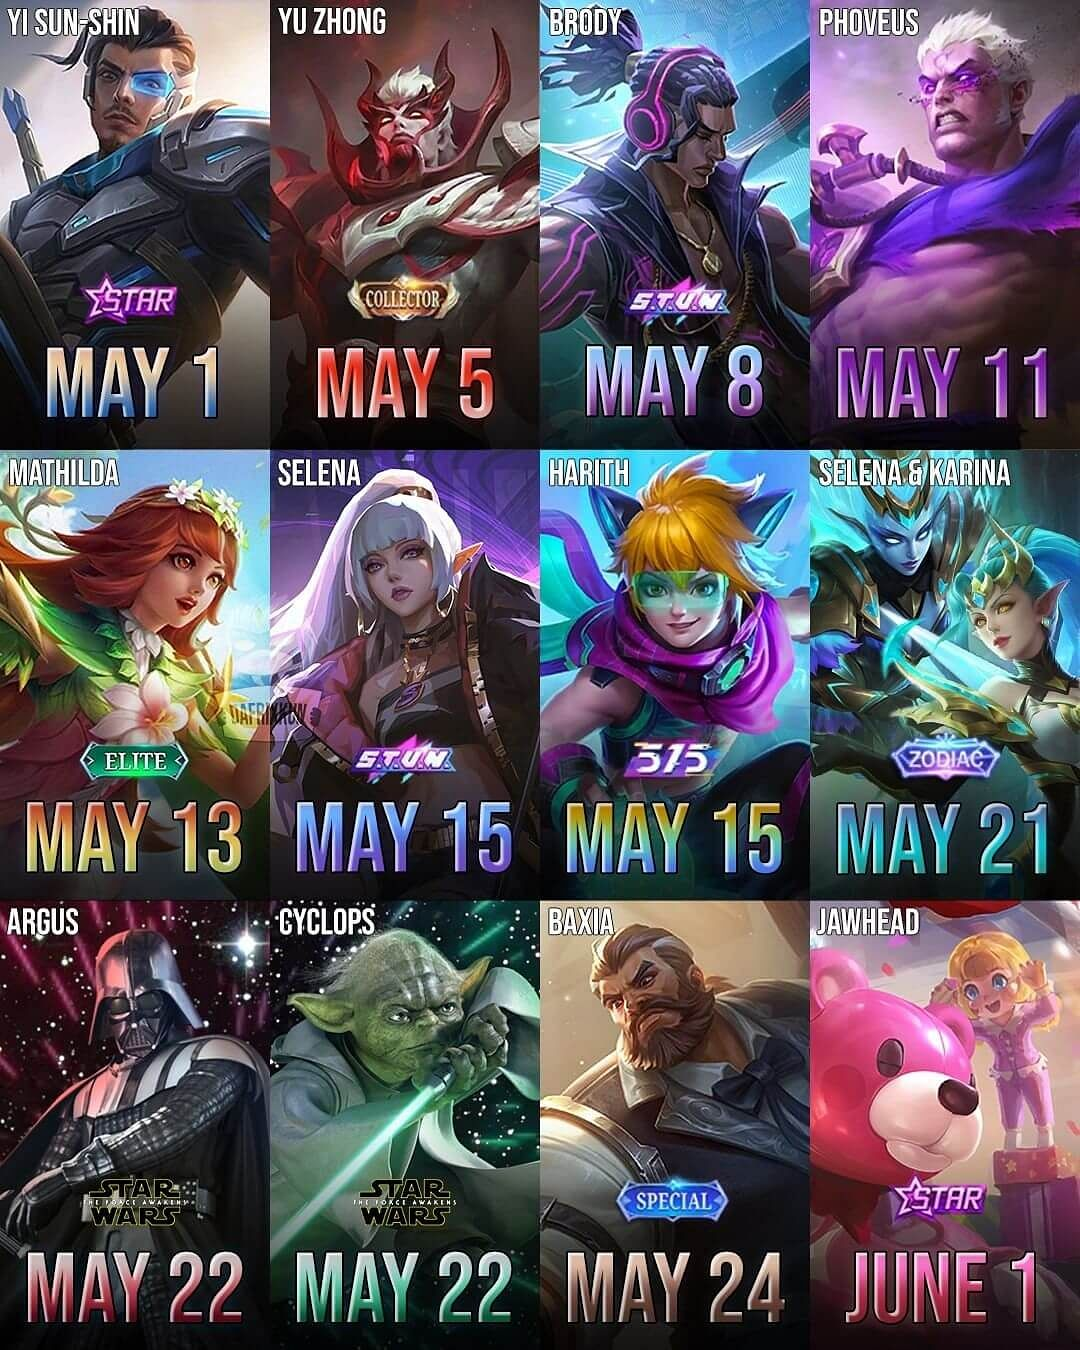 Upcoming Mobile Legends Skins for May 2021 Leaked